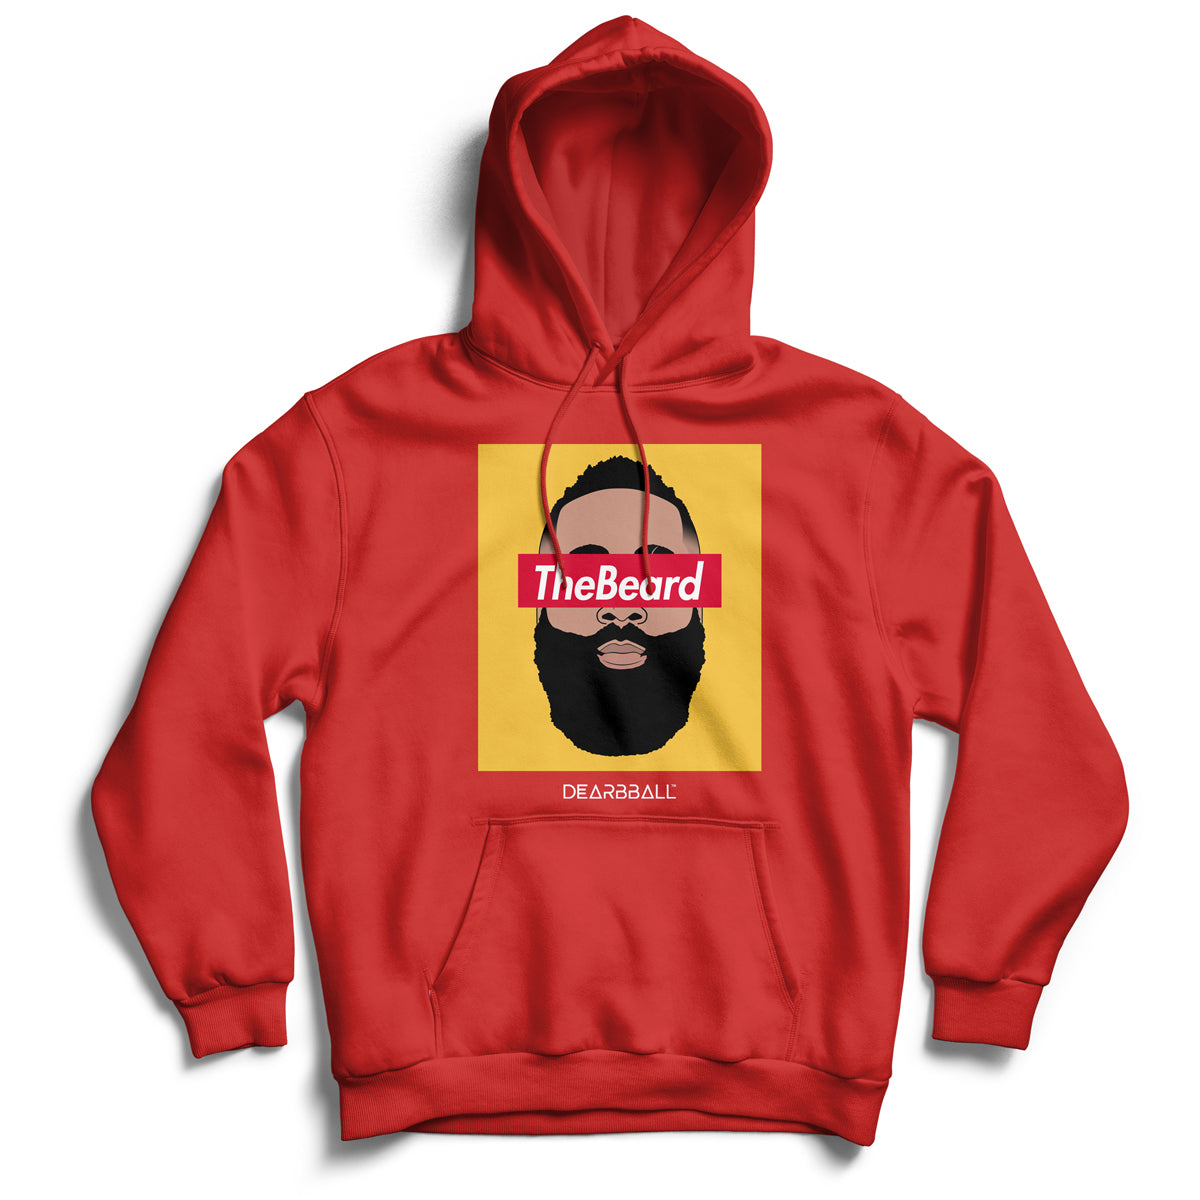 James_Harden_hoodie_THE_BEARD_YELLOW_Houston_Rockets_dearbball_red